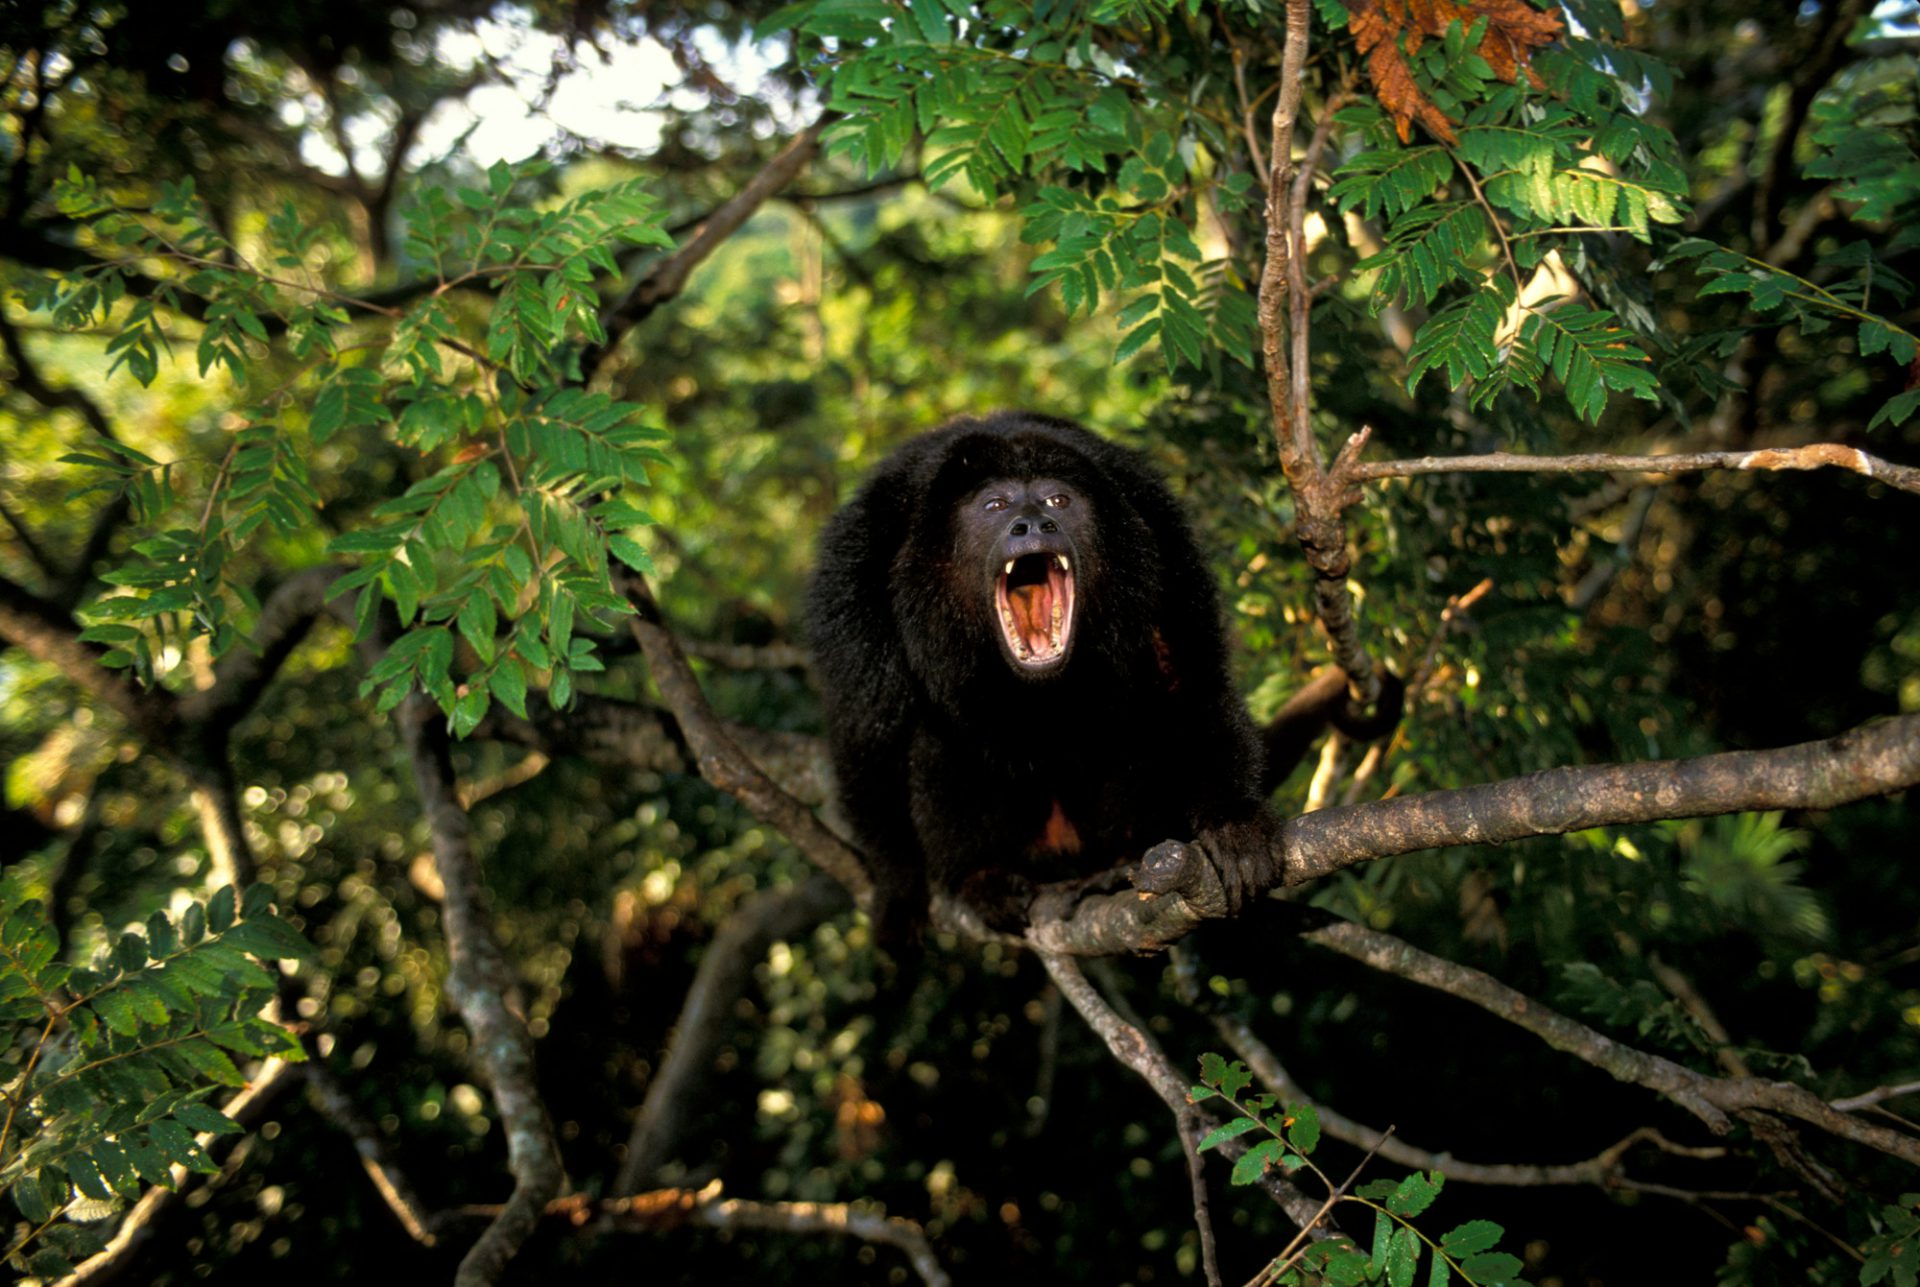 A male black howler monkey (Alouatta caraya) screams in the Pantanal, Brazil.